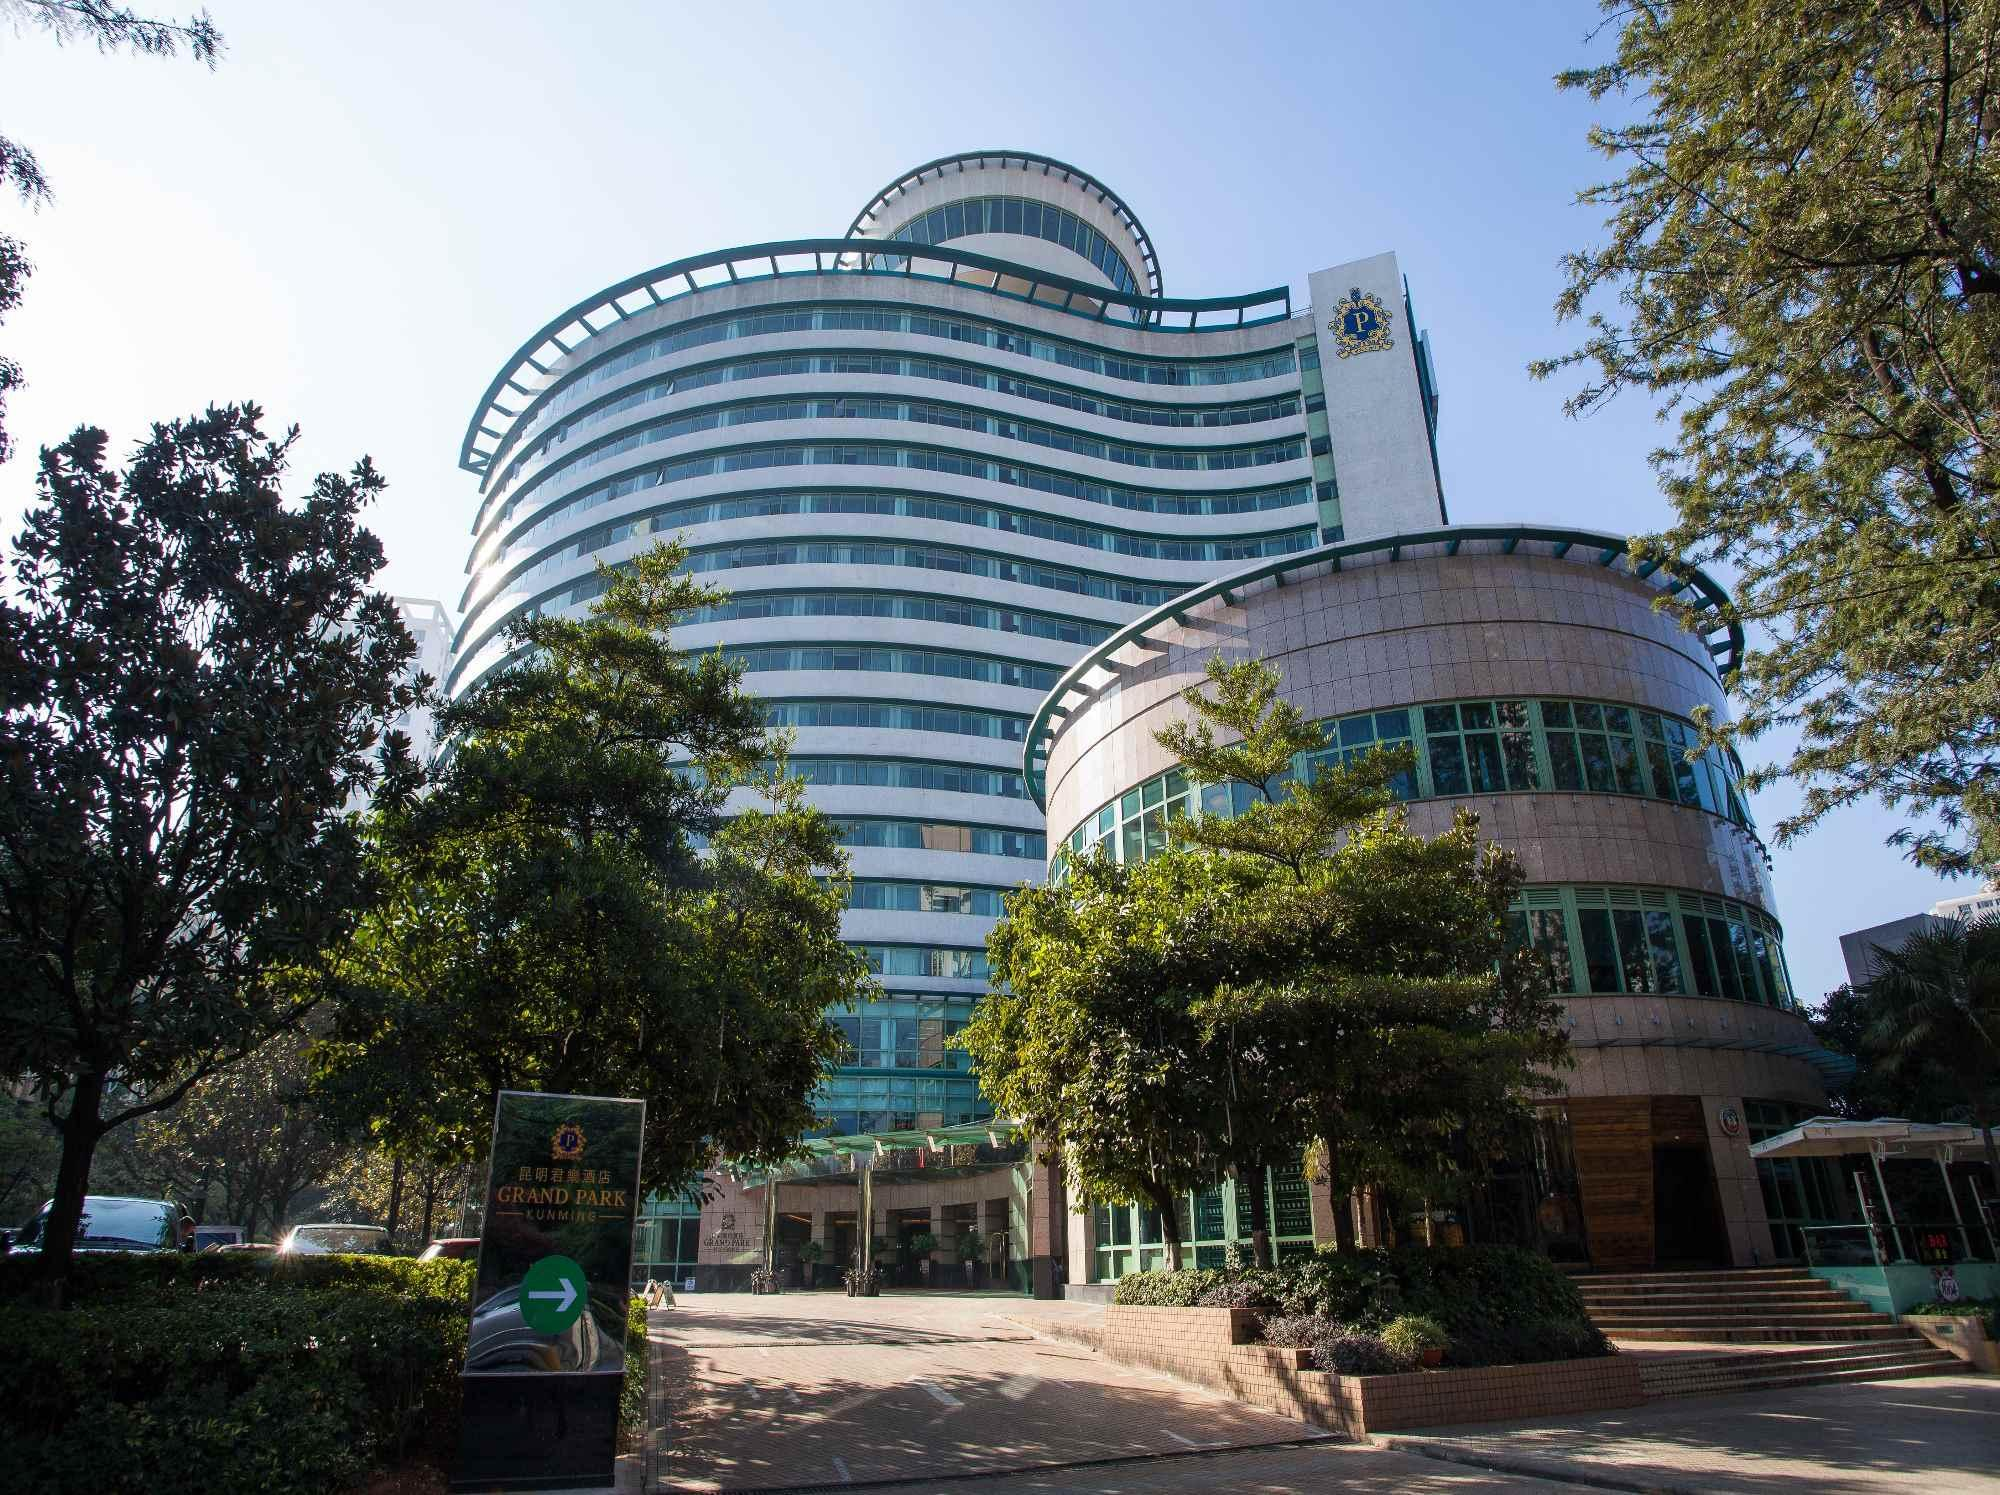 Grand Park Kunming Hotel - Hotel and accommodation in China in Kunming